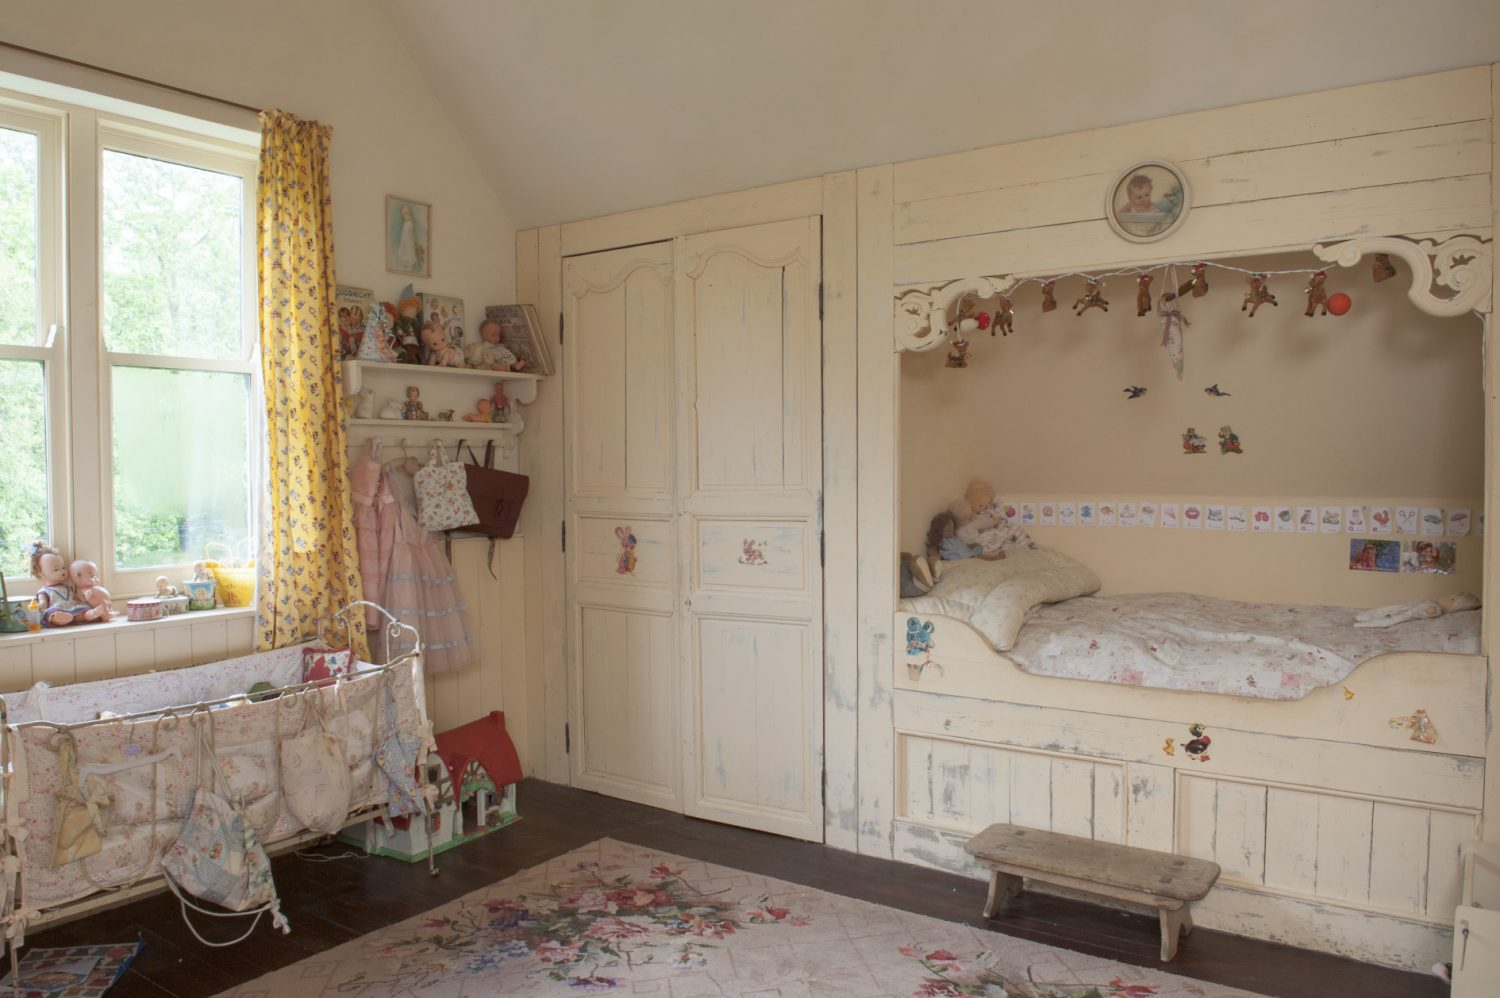 Her bed has been built into the wall in the Russian or Scandinavian style, with a cupboard to one side and drawers underneath